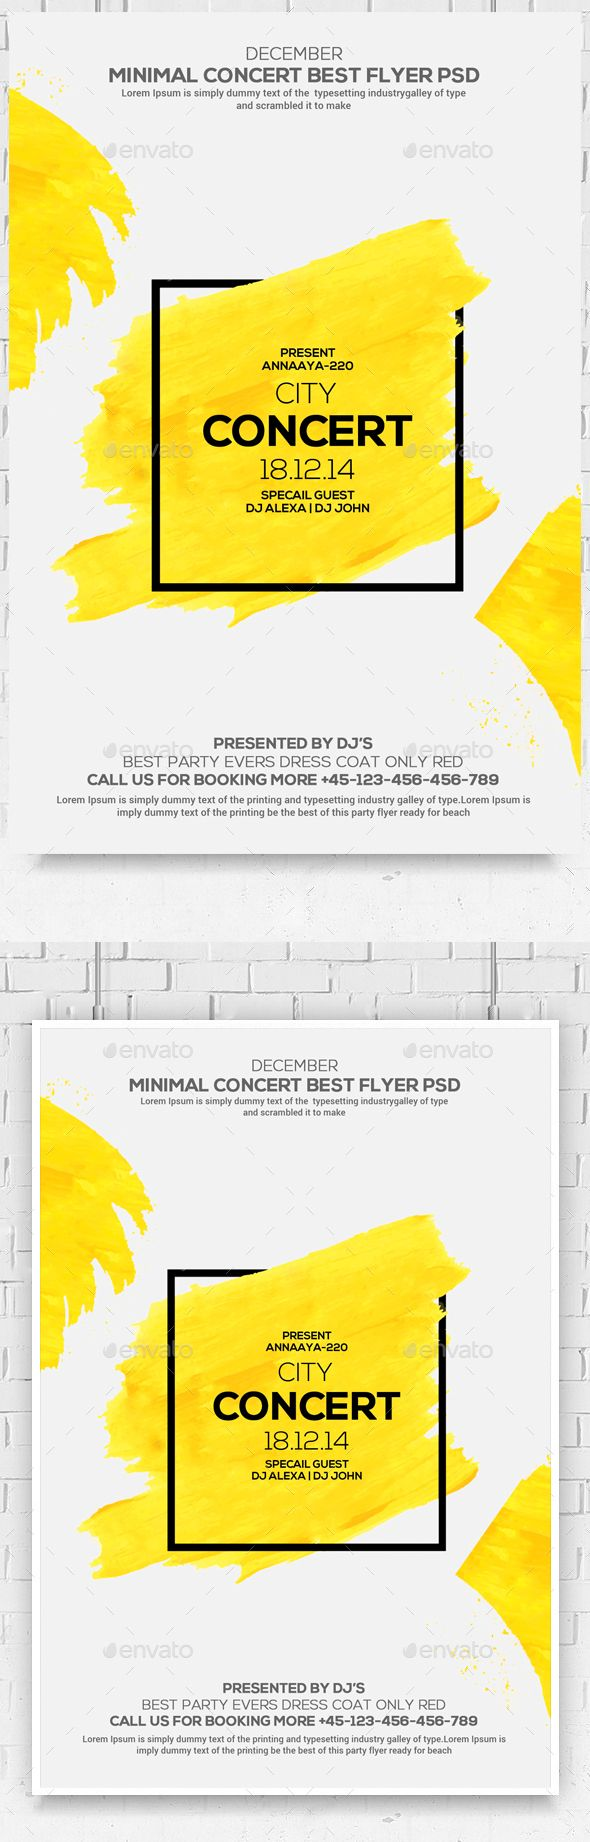 ideas about flyer template flyer design minimal colors flyer psd